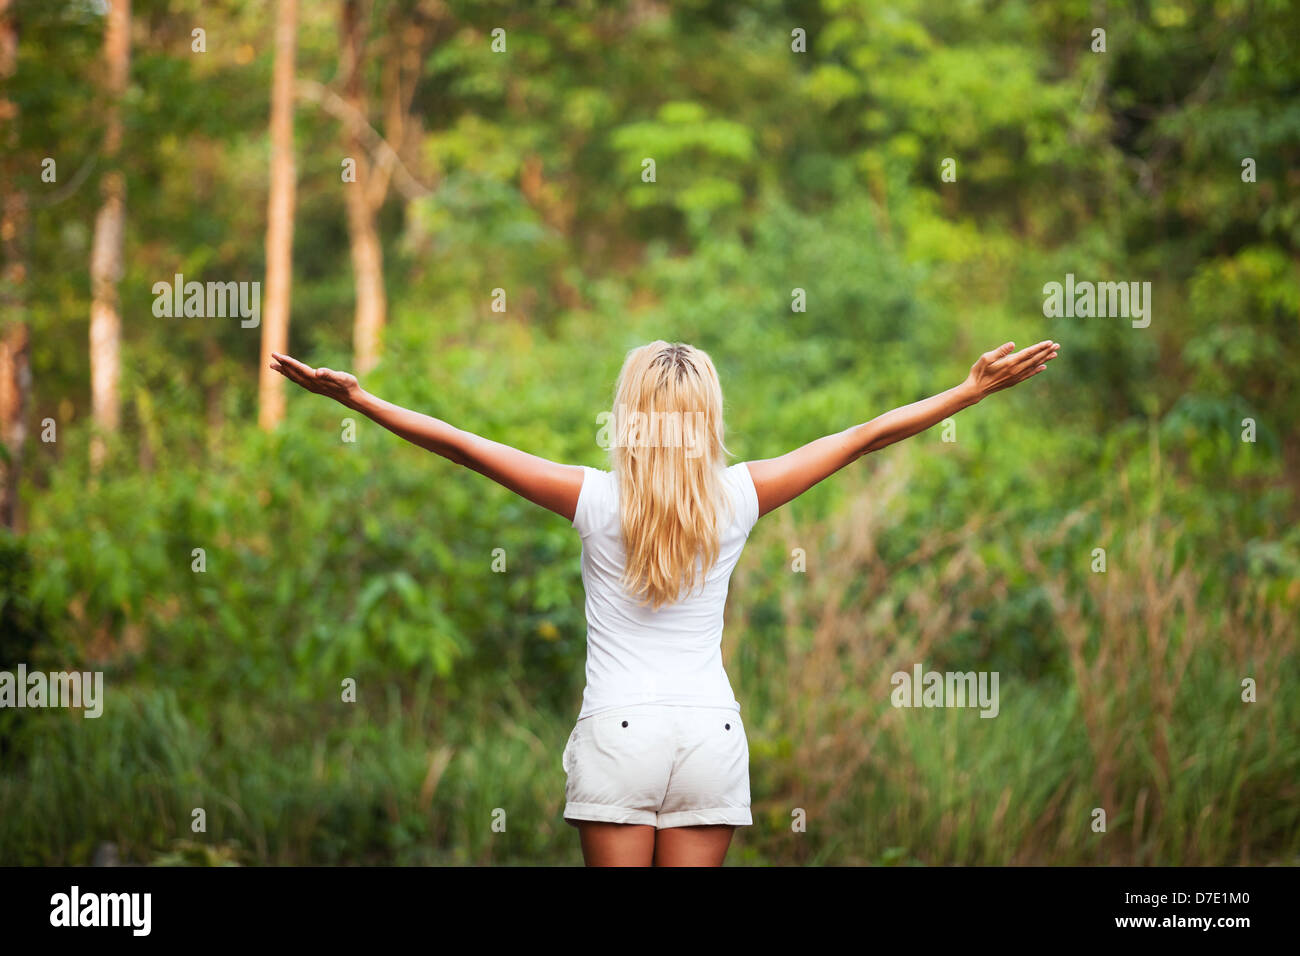 harmony with nature, back woman with raised hands in the forest - Stock Image